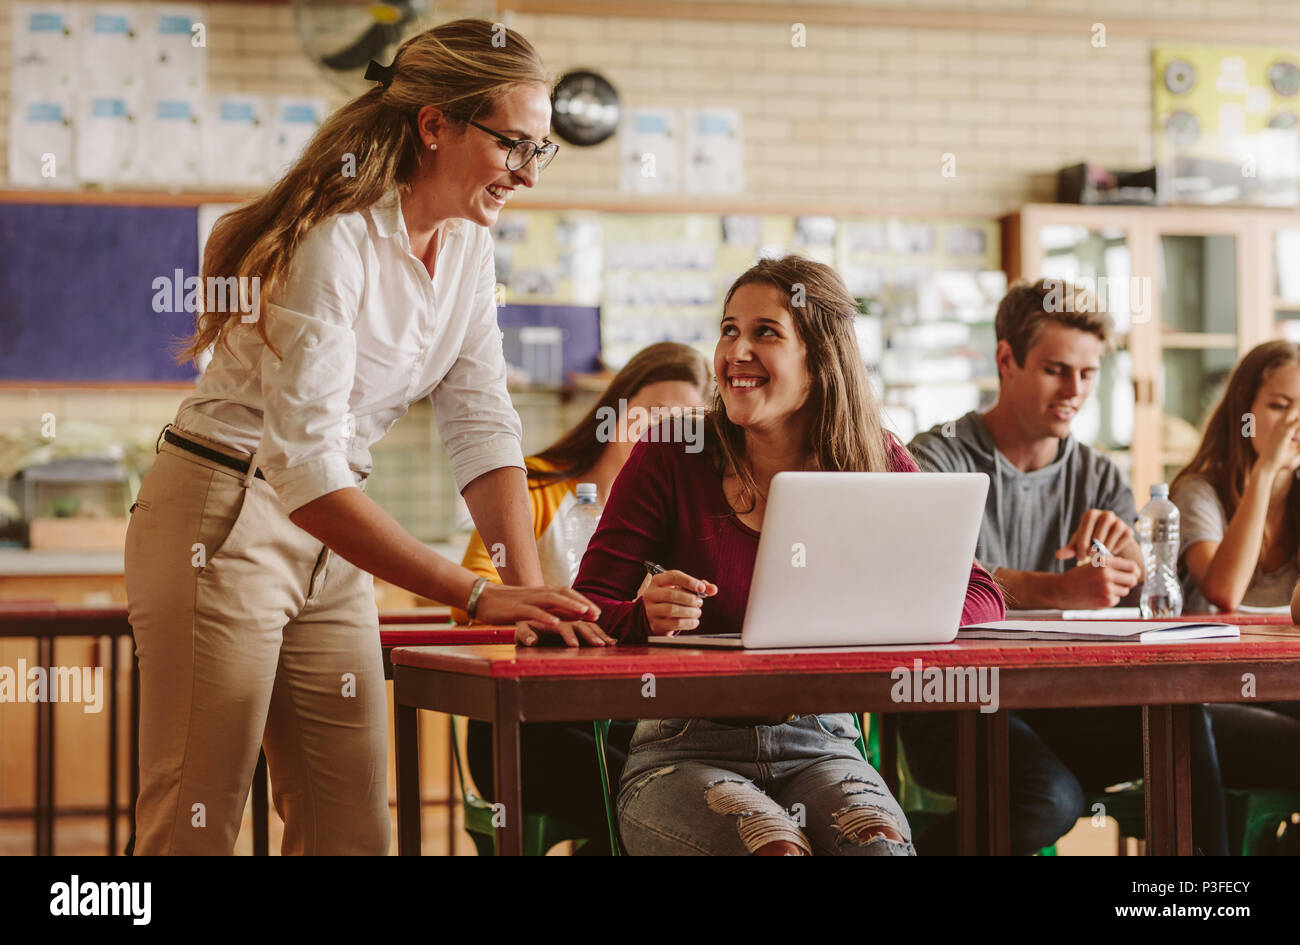 Happy woman high school professor helping students during her class. Group of young people in classroom with helpful teacher. - Stock Image